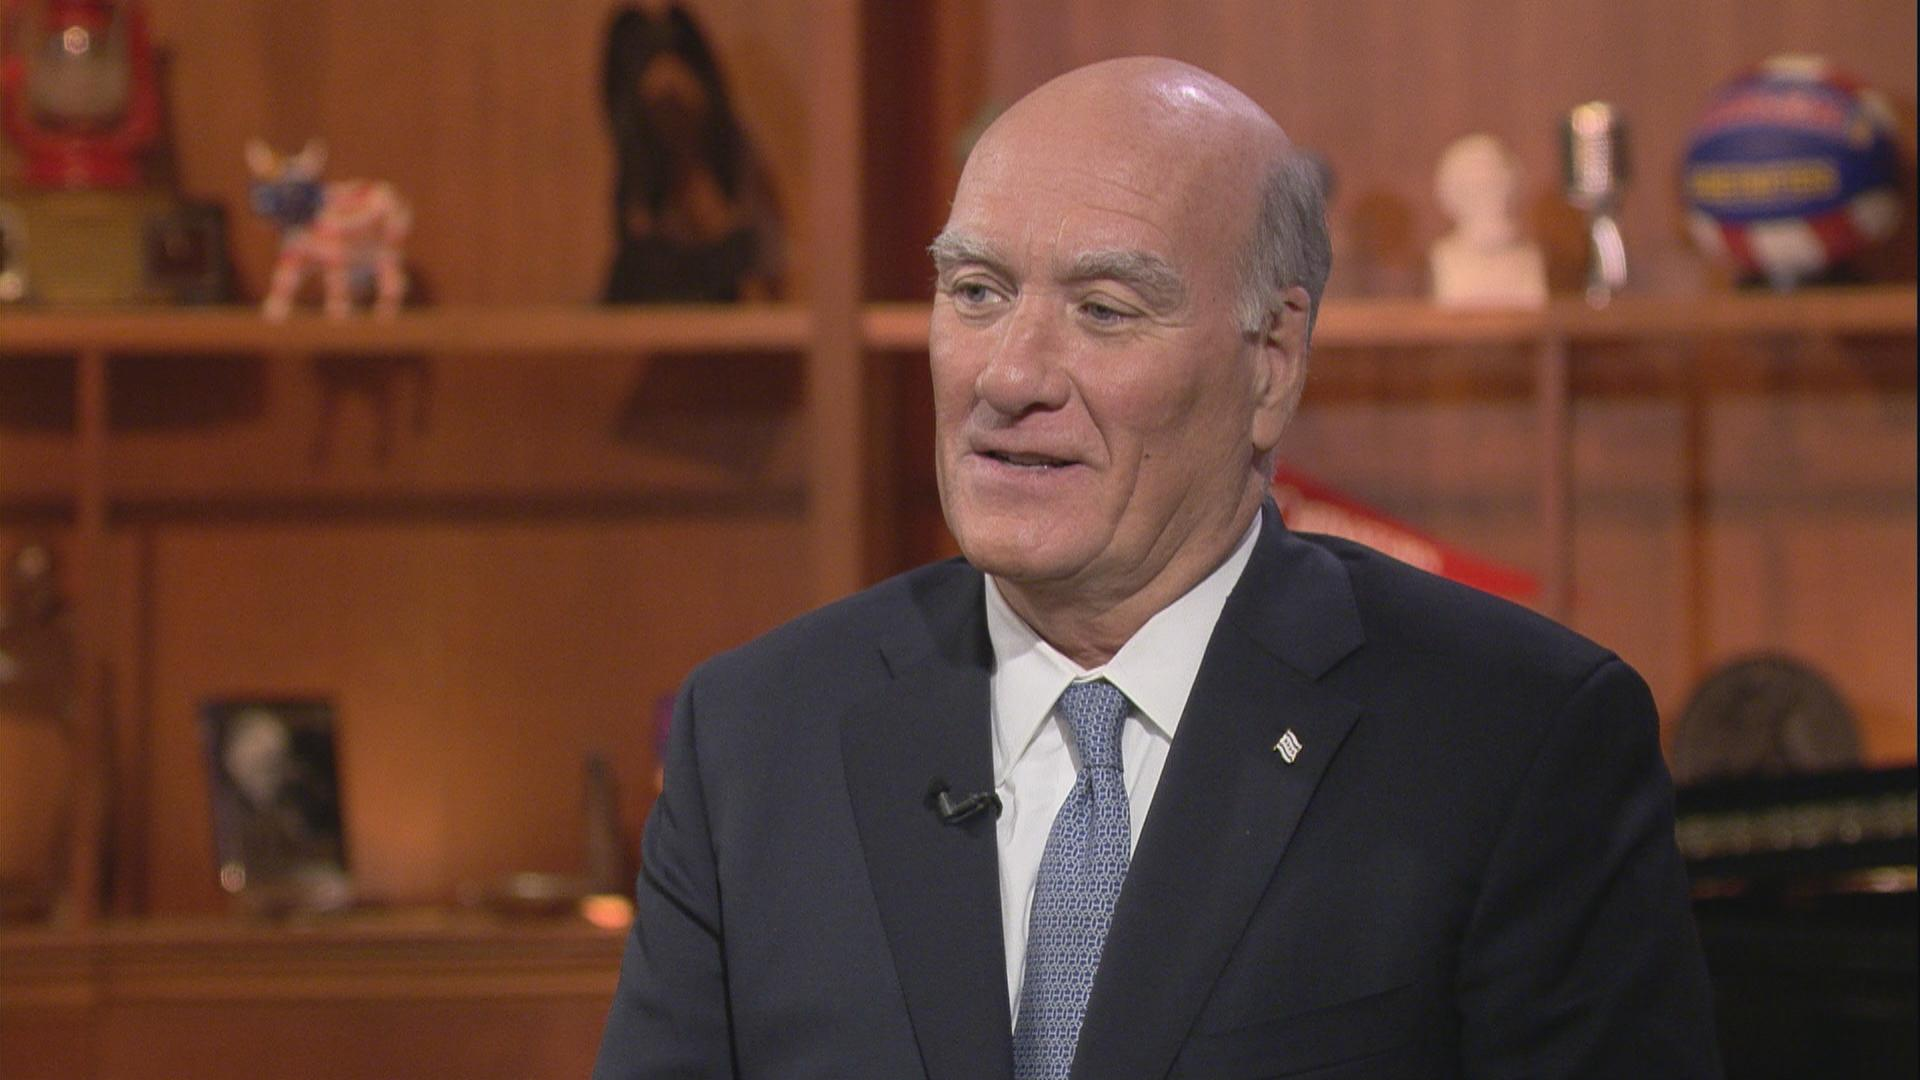 """Former U.S. Commerce Secretary and White House chief of staff Bill Daley appears on """"Chicago Tonight"""" on Sept. 17, 2018. (WTTW News)"""